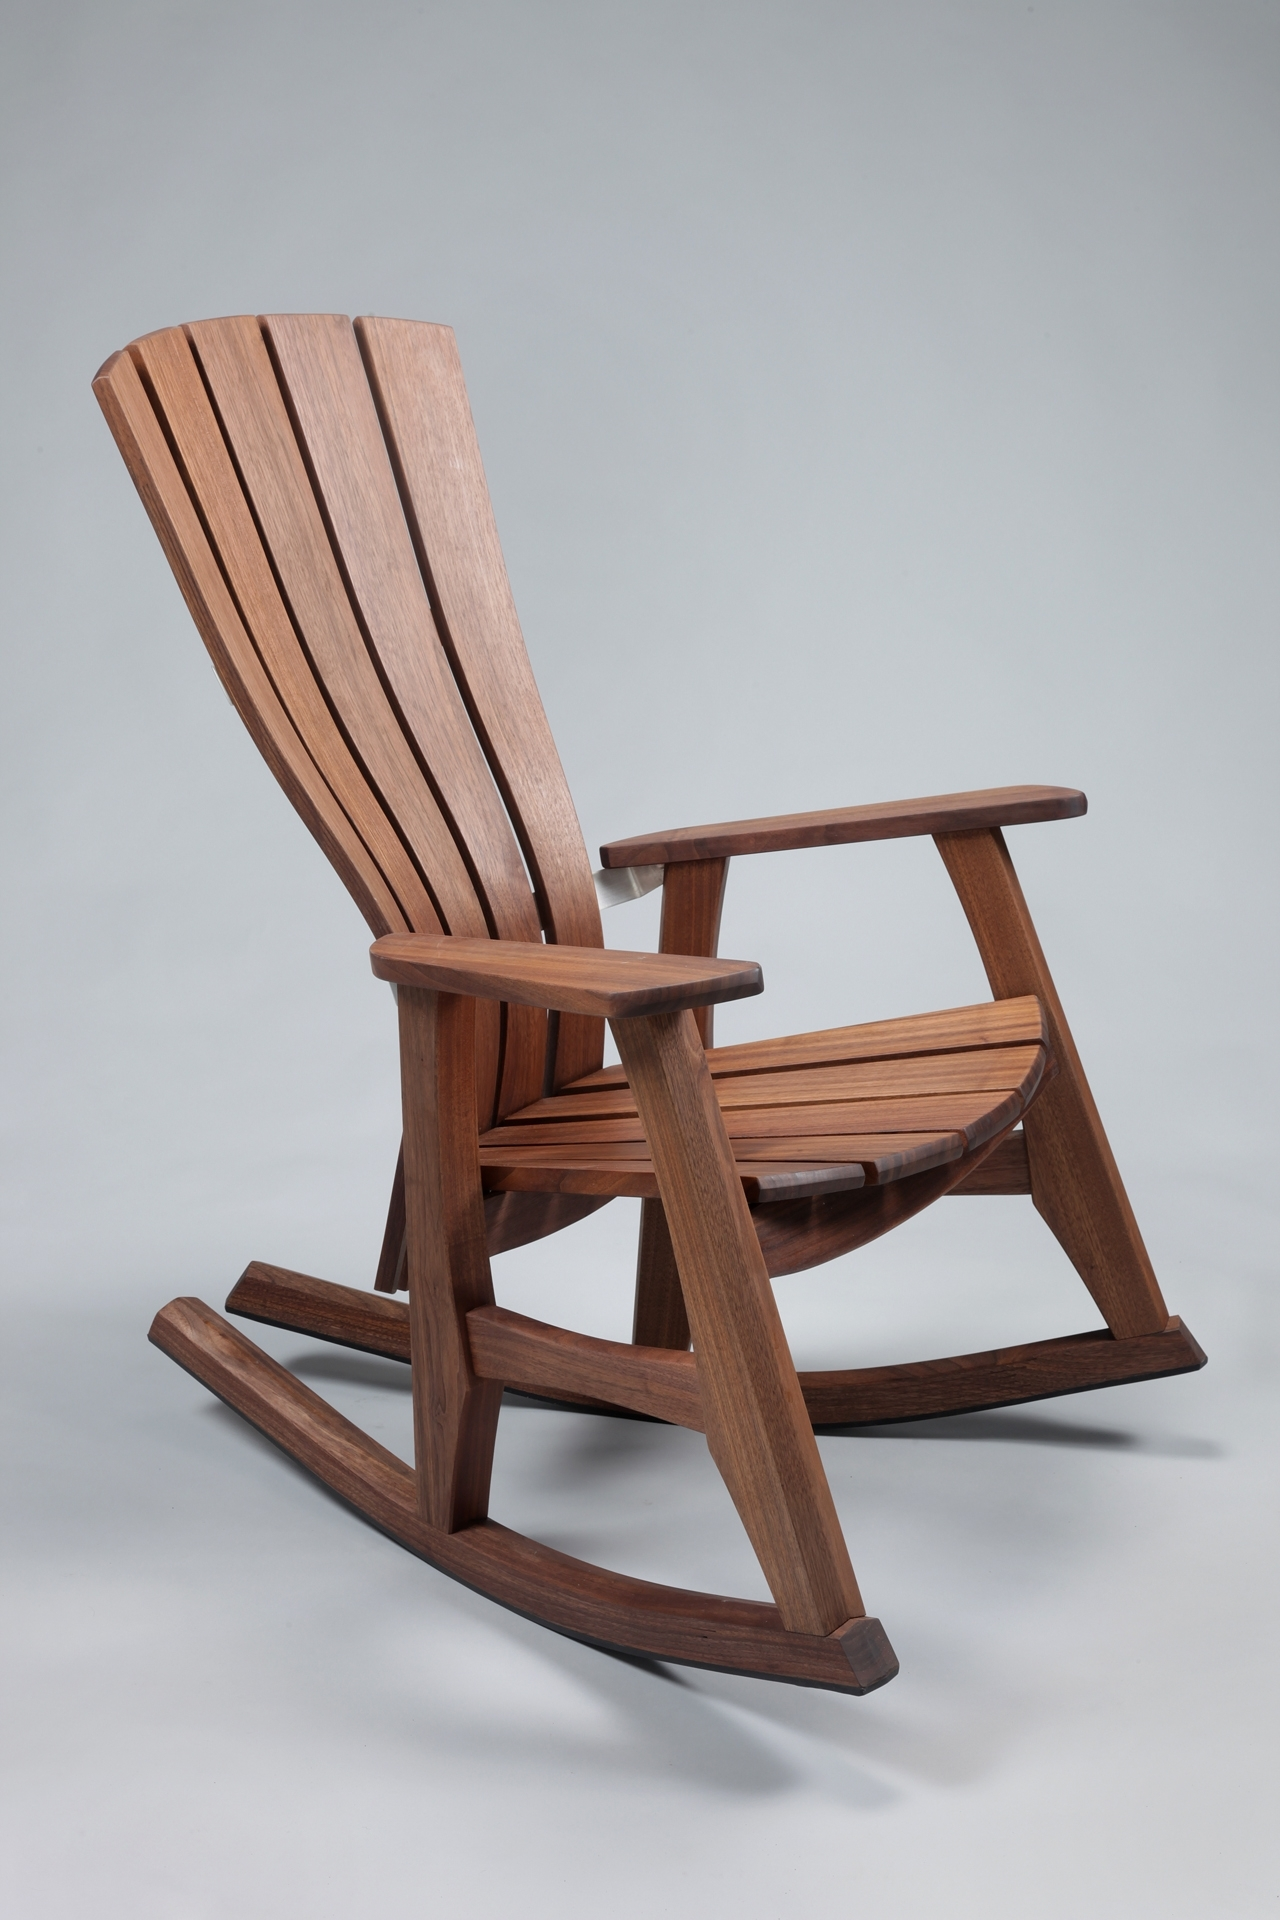 Best And Newest Rocking Chair Outdoor Wooden Inside Outdoor Wooden Rocking Chairs Back : Pleasure Outdoor Wooden Rocking (View 3 of 15)